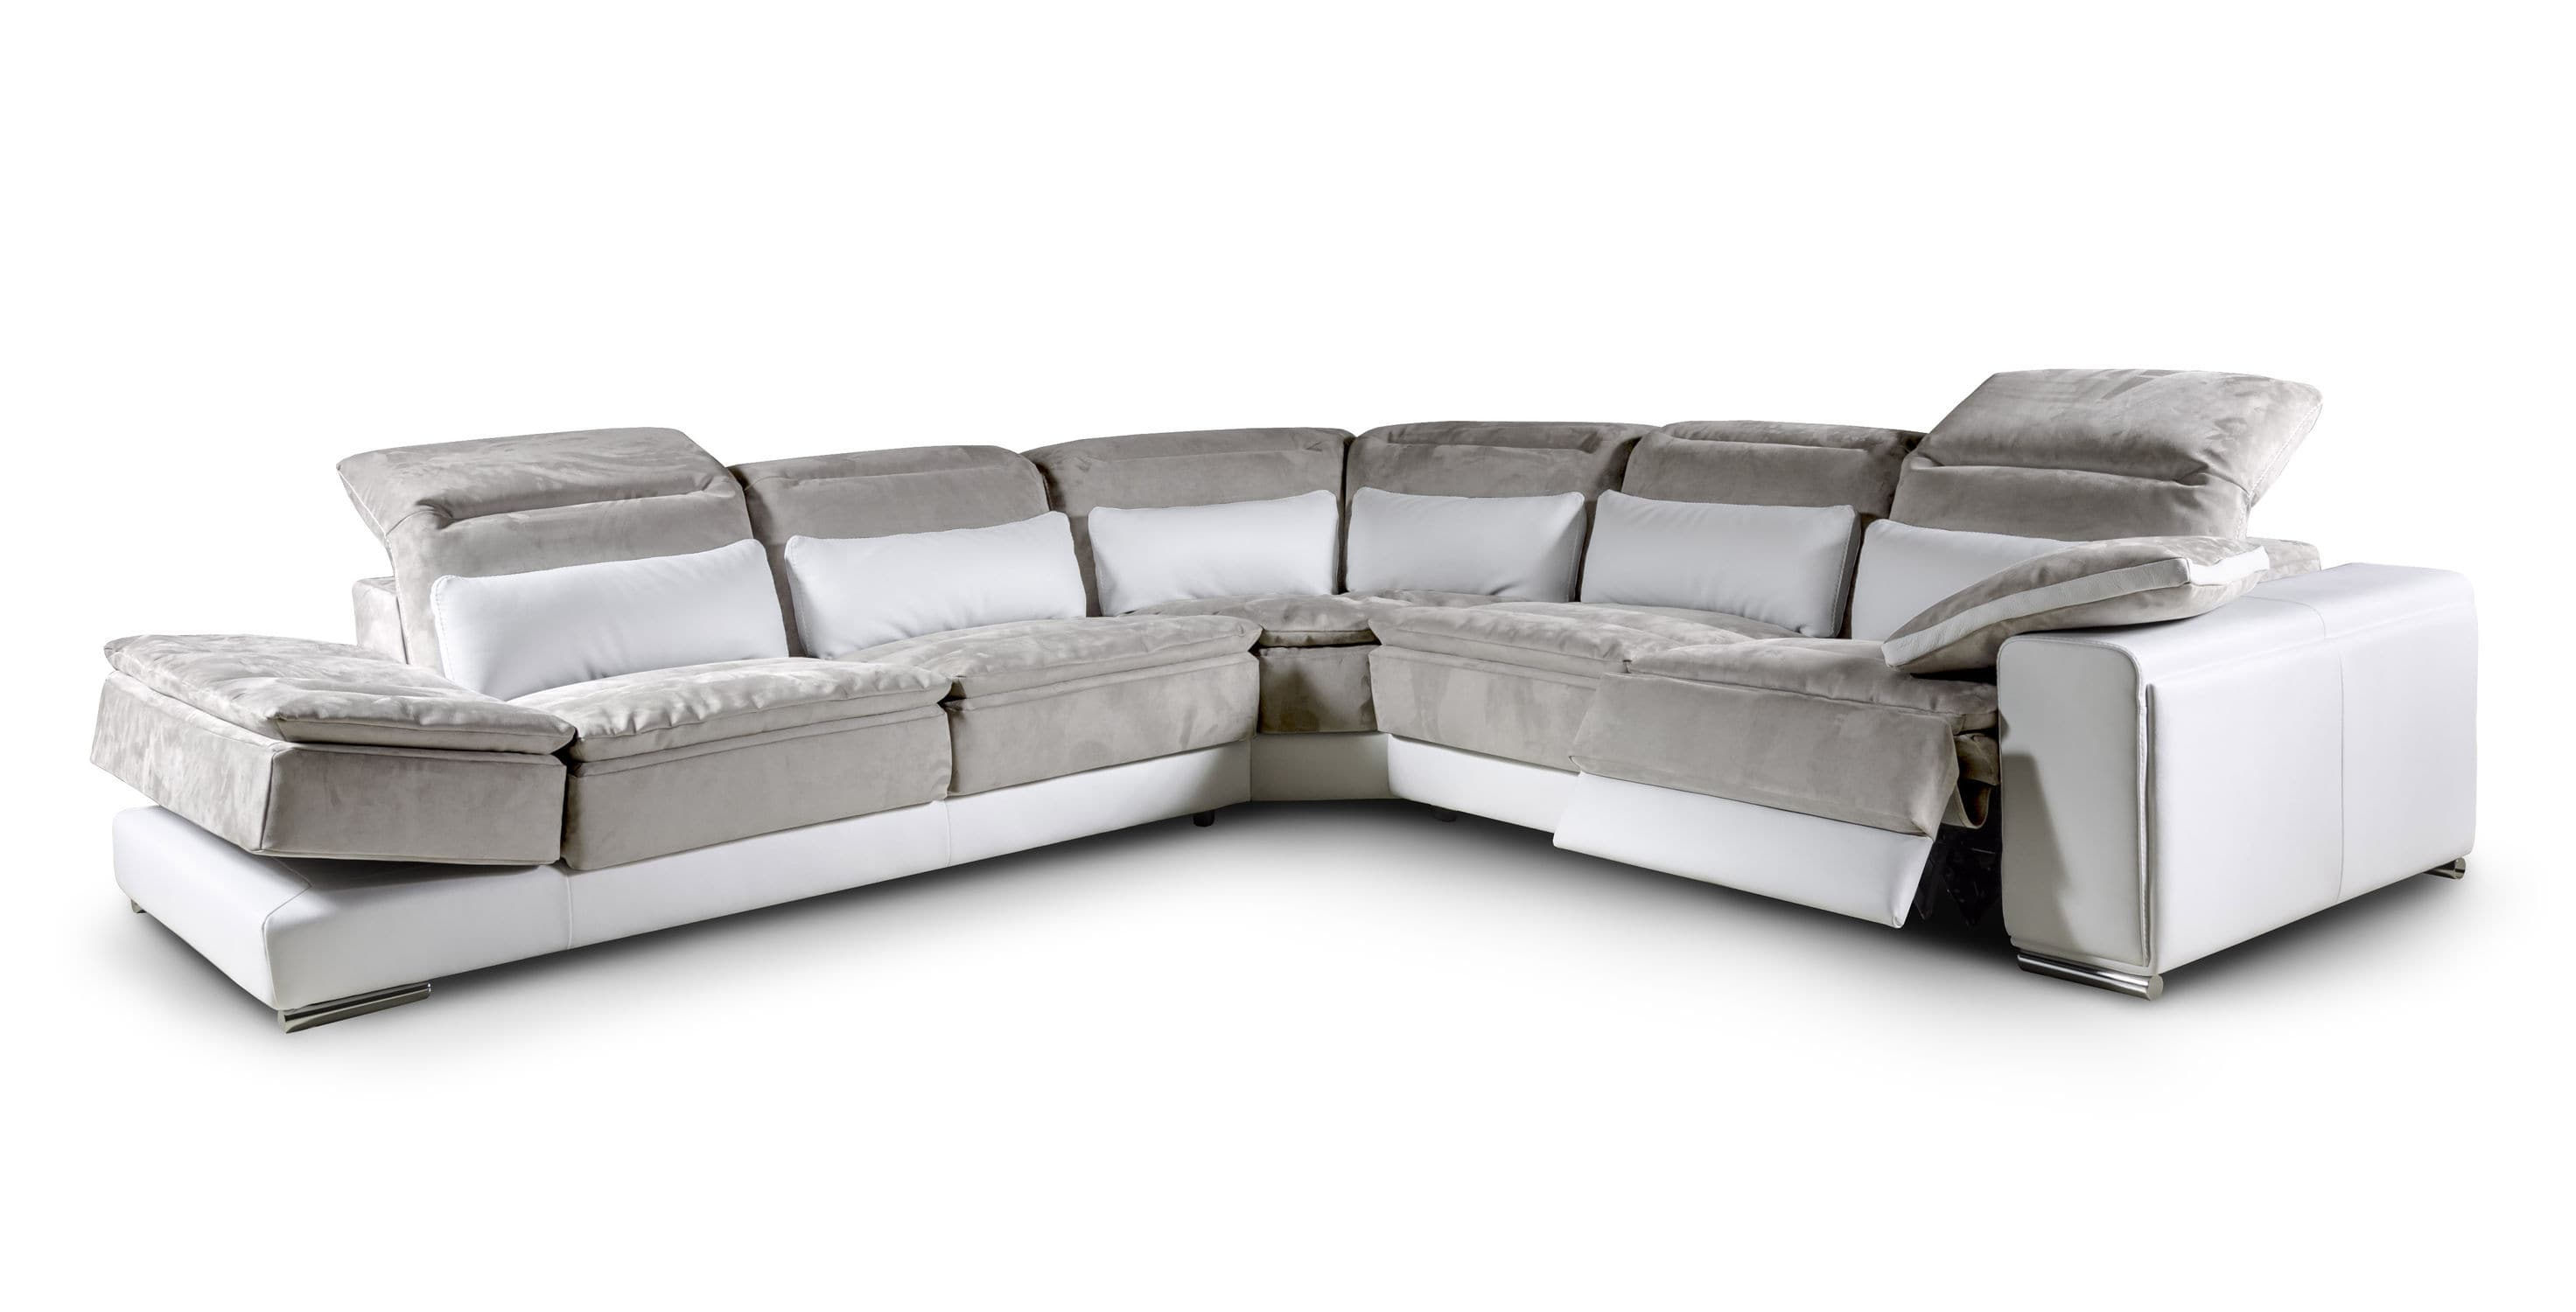 Corner sofa contemporary leather fabric BROOKLYN Nieri